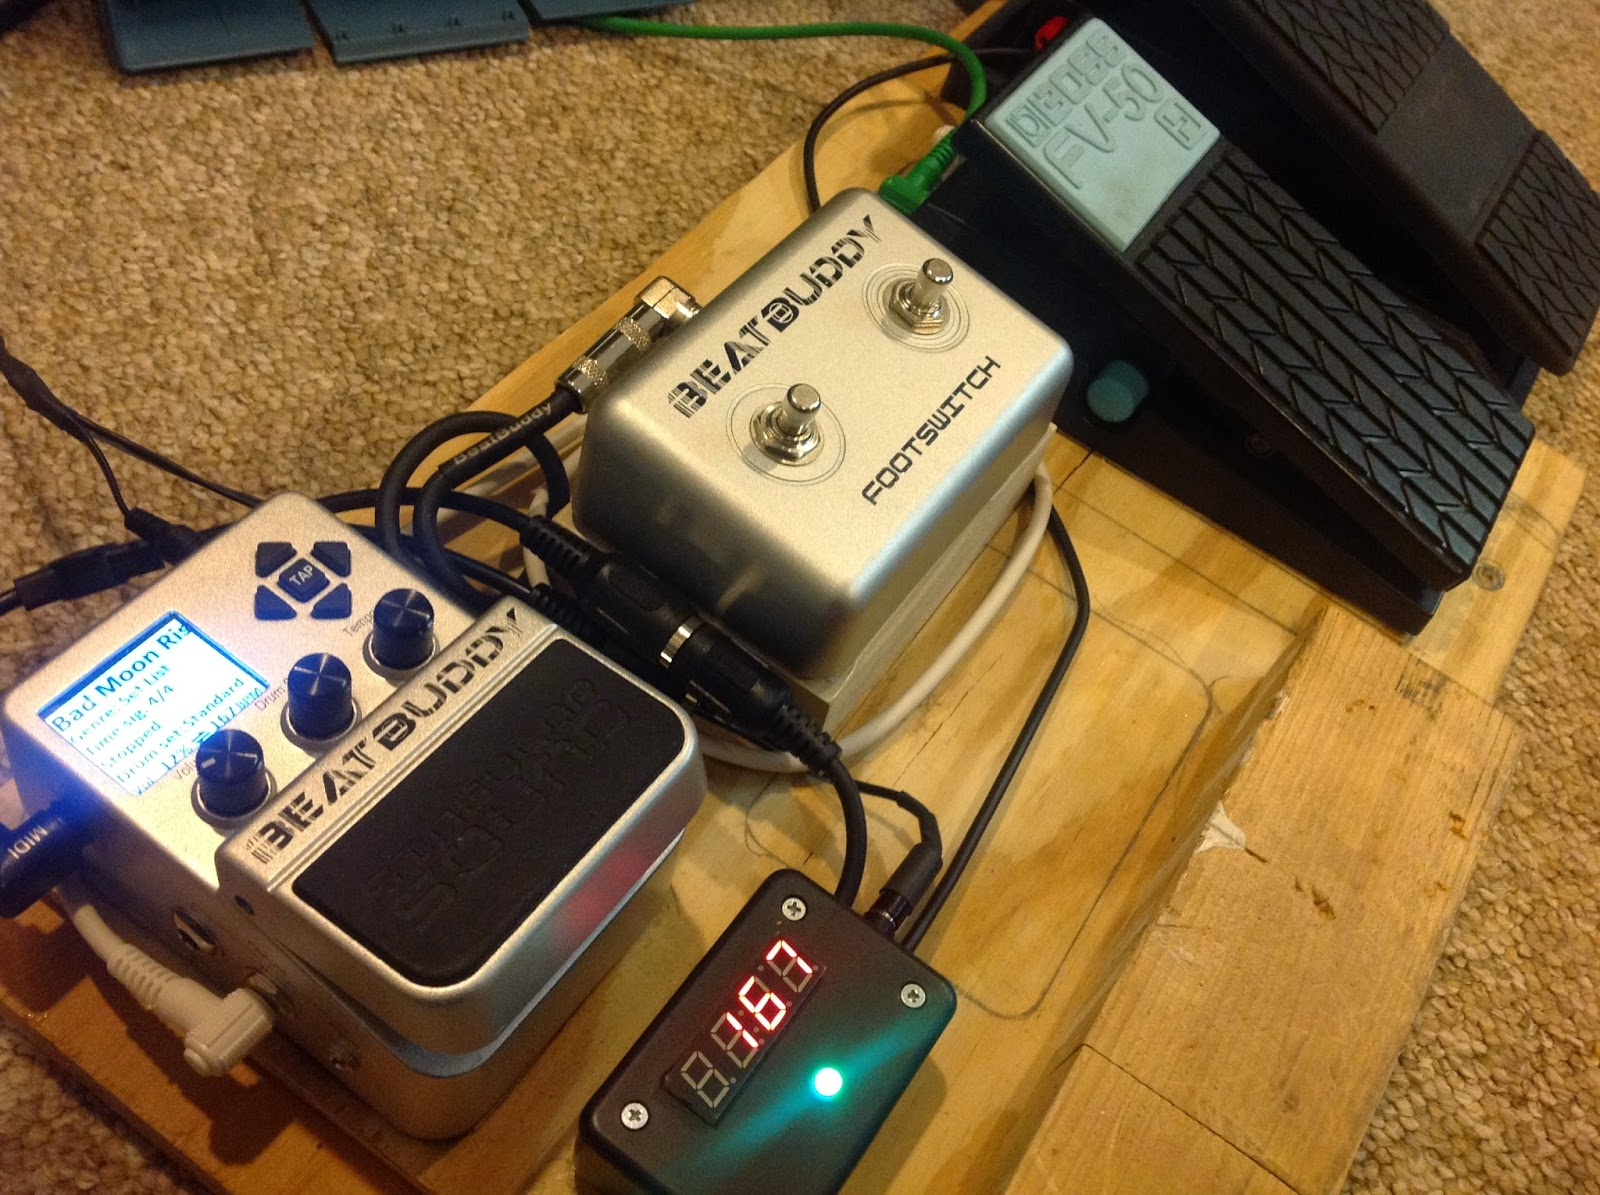 Hooked On Arduino Raspberry Pi Part 1 Hardware Design Beatbuddy Pedal Board Wiring Ive Created An Inexpensive But Very Functional Shown Below With Volume And Tempo Pedals